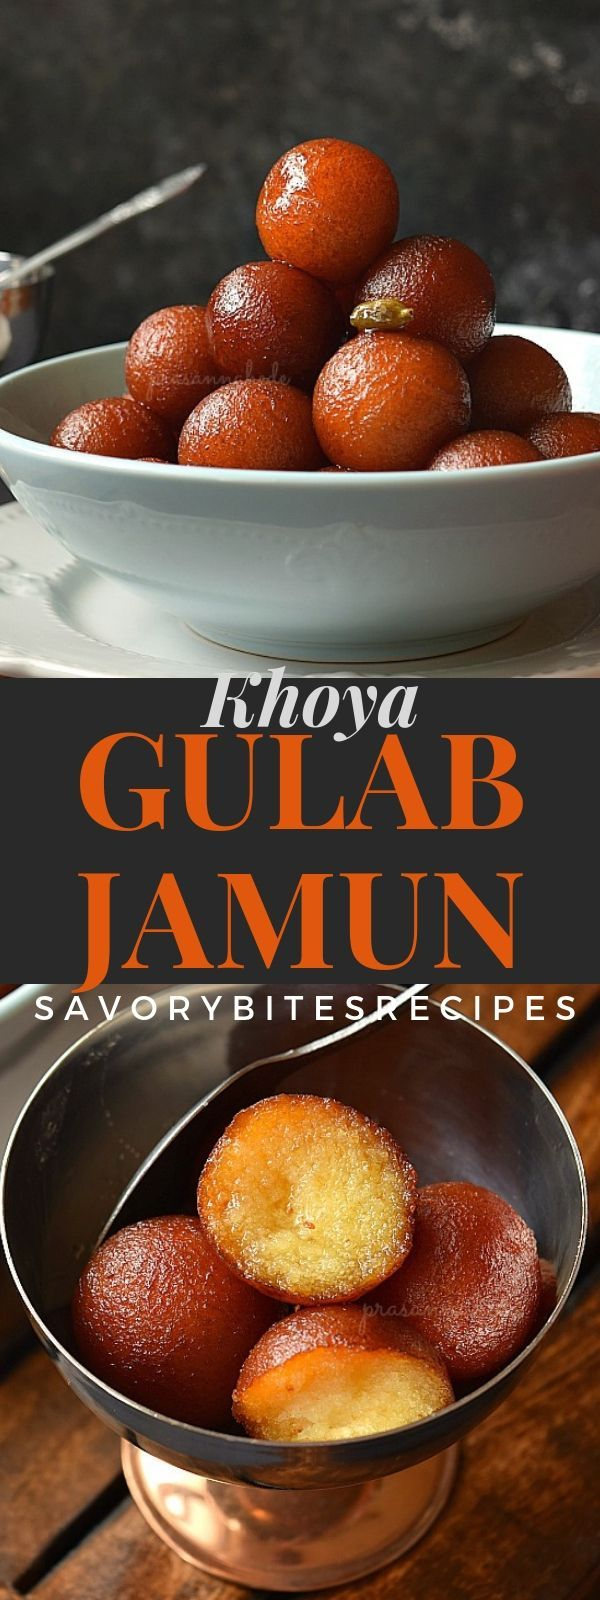 Gulab Jamun Recipe(Gulab Jamun made with Khoya) #indianfood